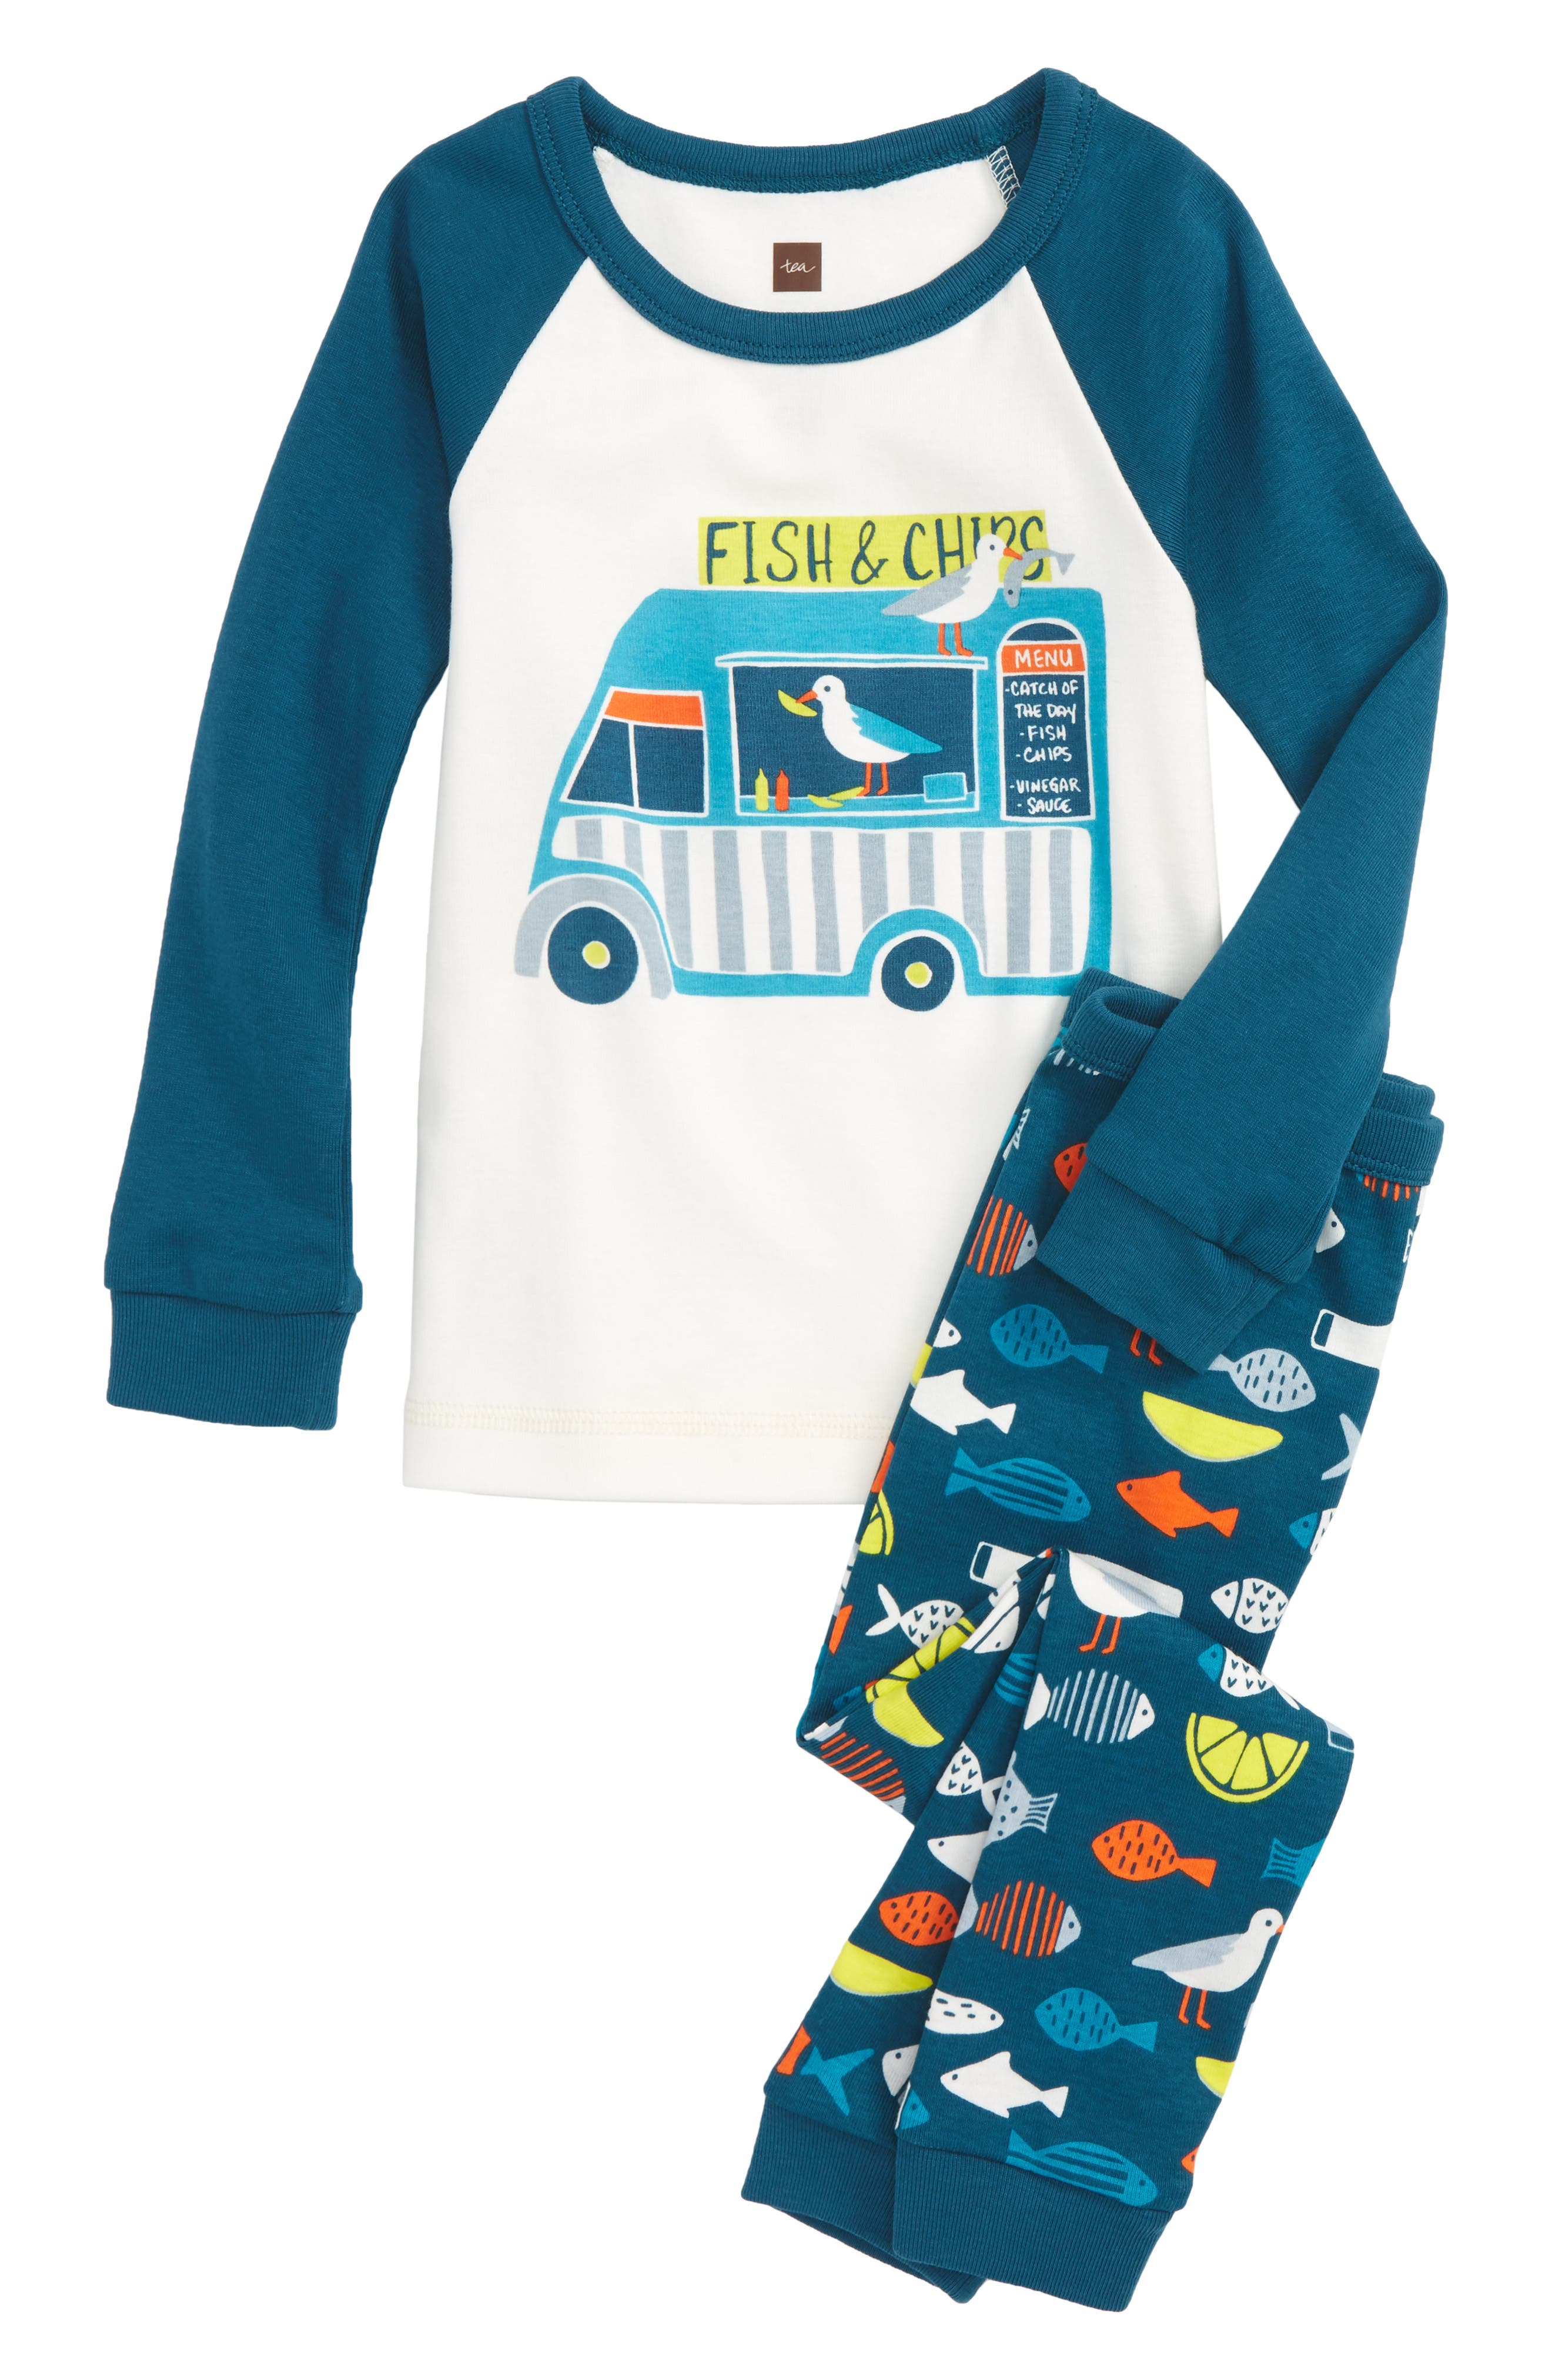 Alternate Image 1 Selected - Tea Collection Fish & Chips Fitted Two-Piece Pajamas (Toddler Boys, Little Boys & Big Boys)